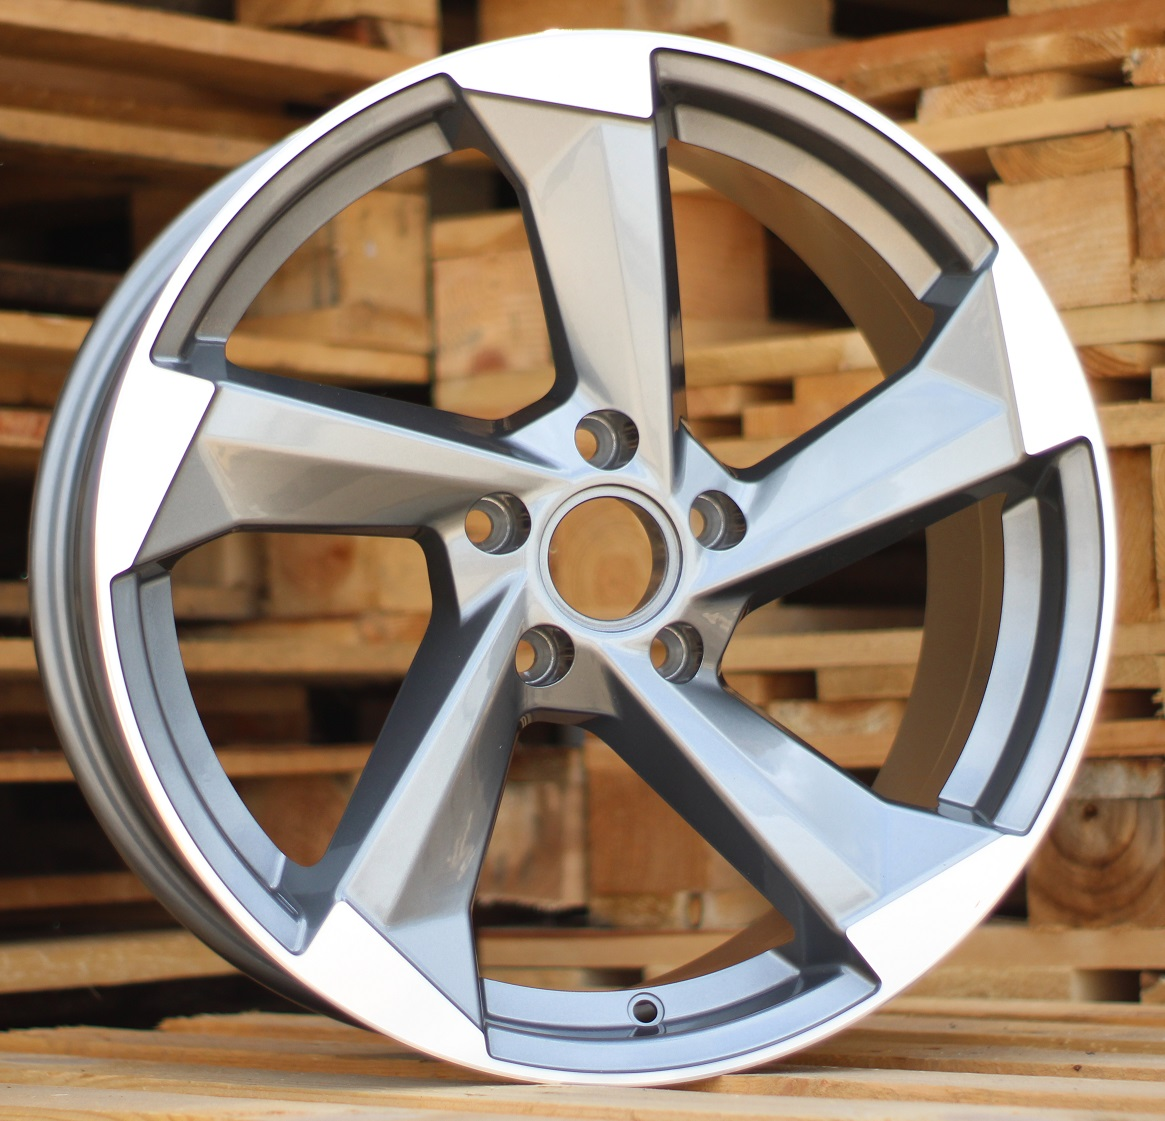 A18X8 5X112 ET35 66.45 XFE150 MG+Powder coating RWR AUD (+3eur) (P1)## 8x18 ET35 5x112